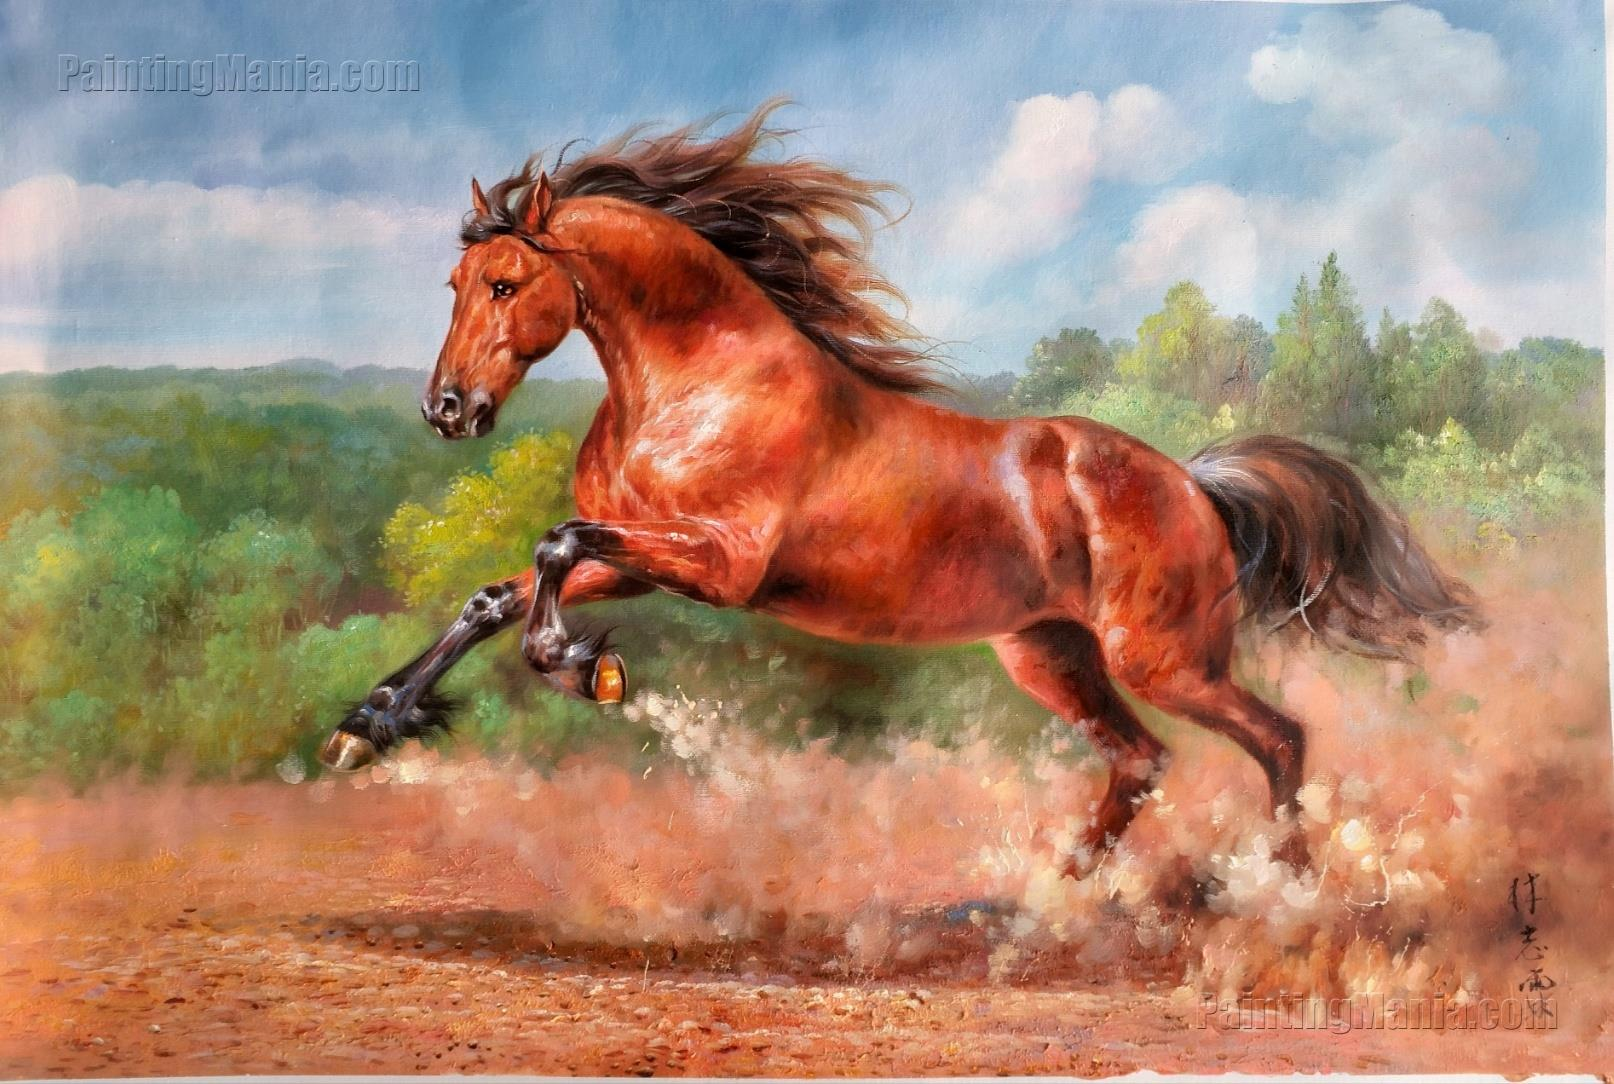 The Running Red Horse